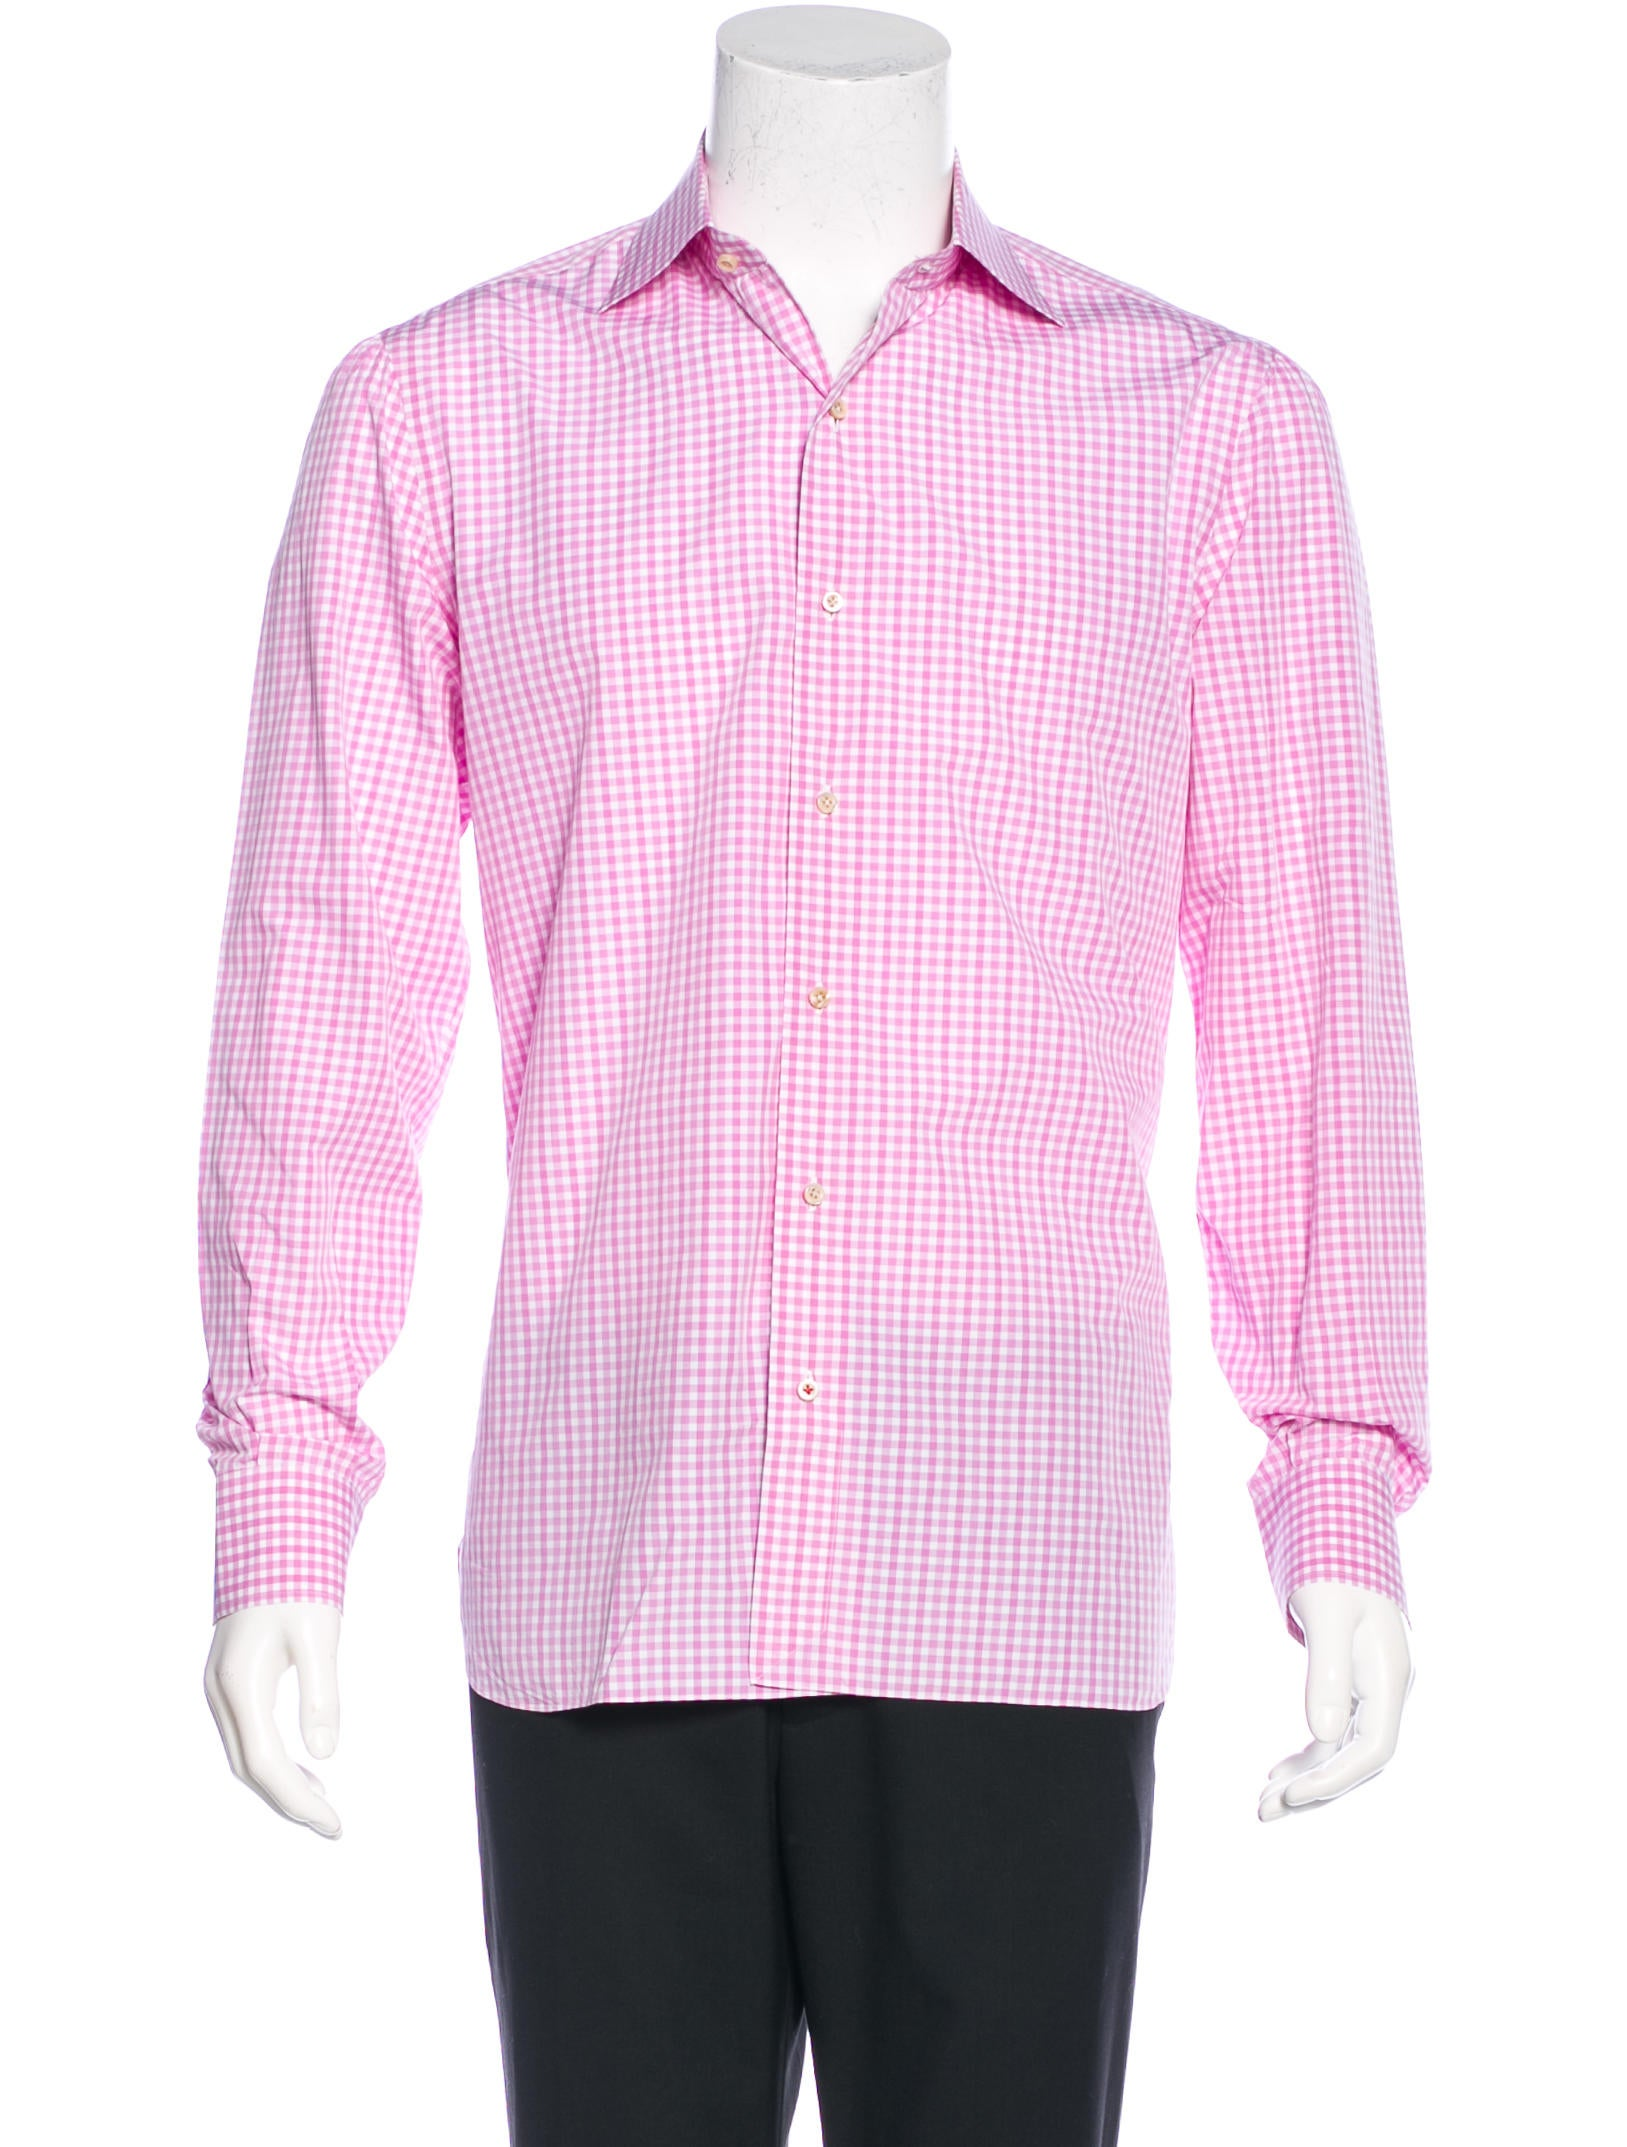 Isaia gingham dress shirt clothing isi20279 the realreal for Men s red gingham dress shirt